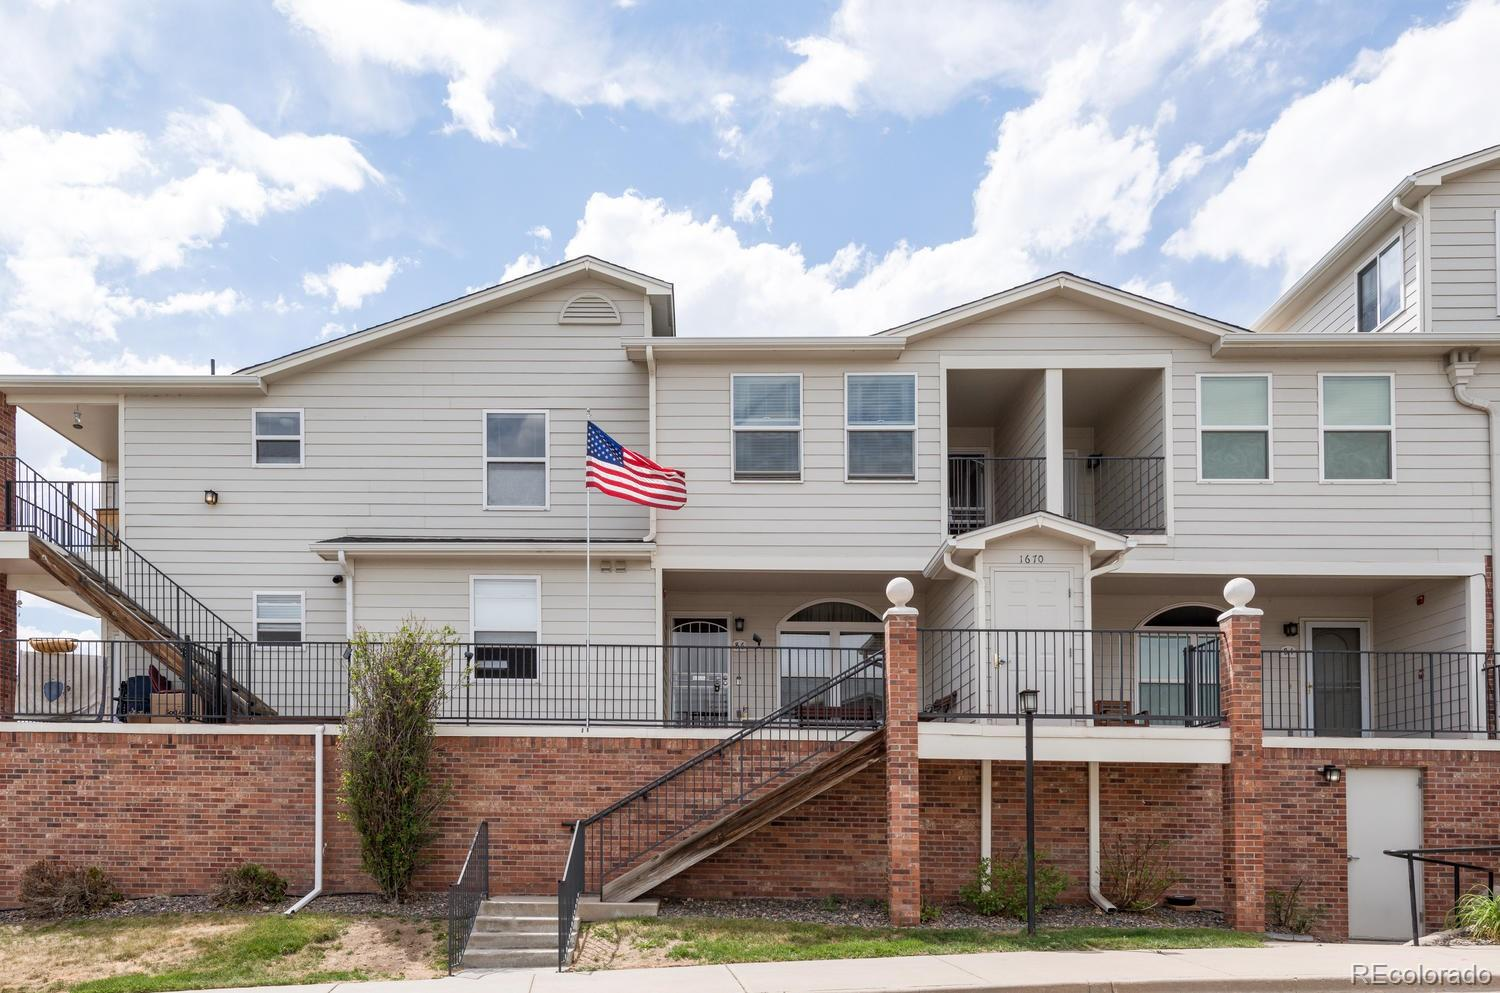 1670 S Deframe Street #B6, Lakewood, CO 80228 - Lakewood, CO real estate listing